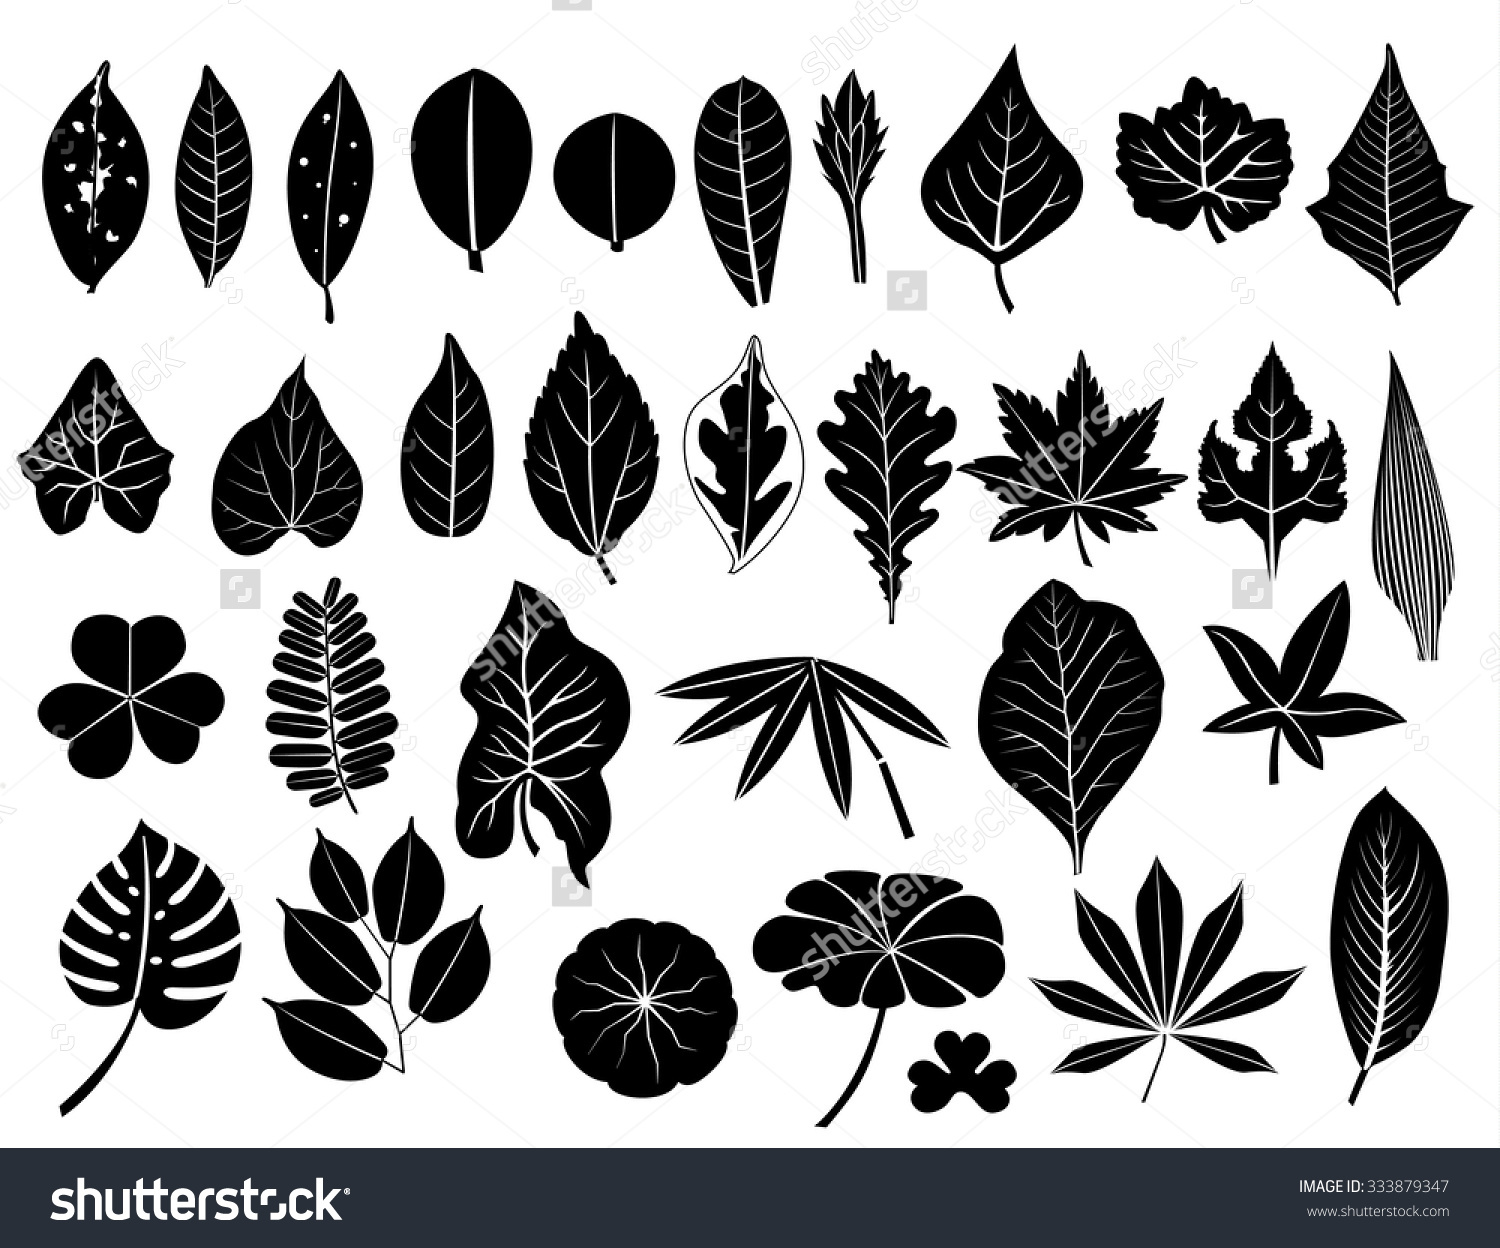 Leaf row silhouette clipart freeuse stock Silhouette Leaves Vector Set Grape Acacia Stock Vector 333879347 ... freeuse stock